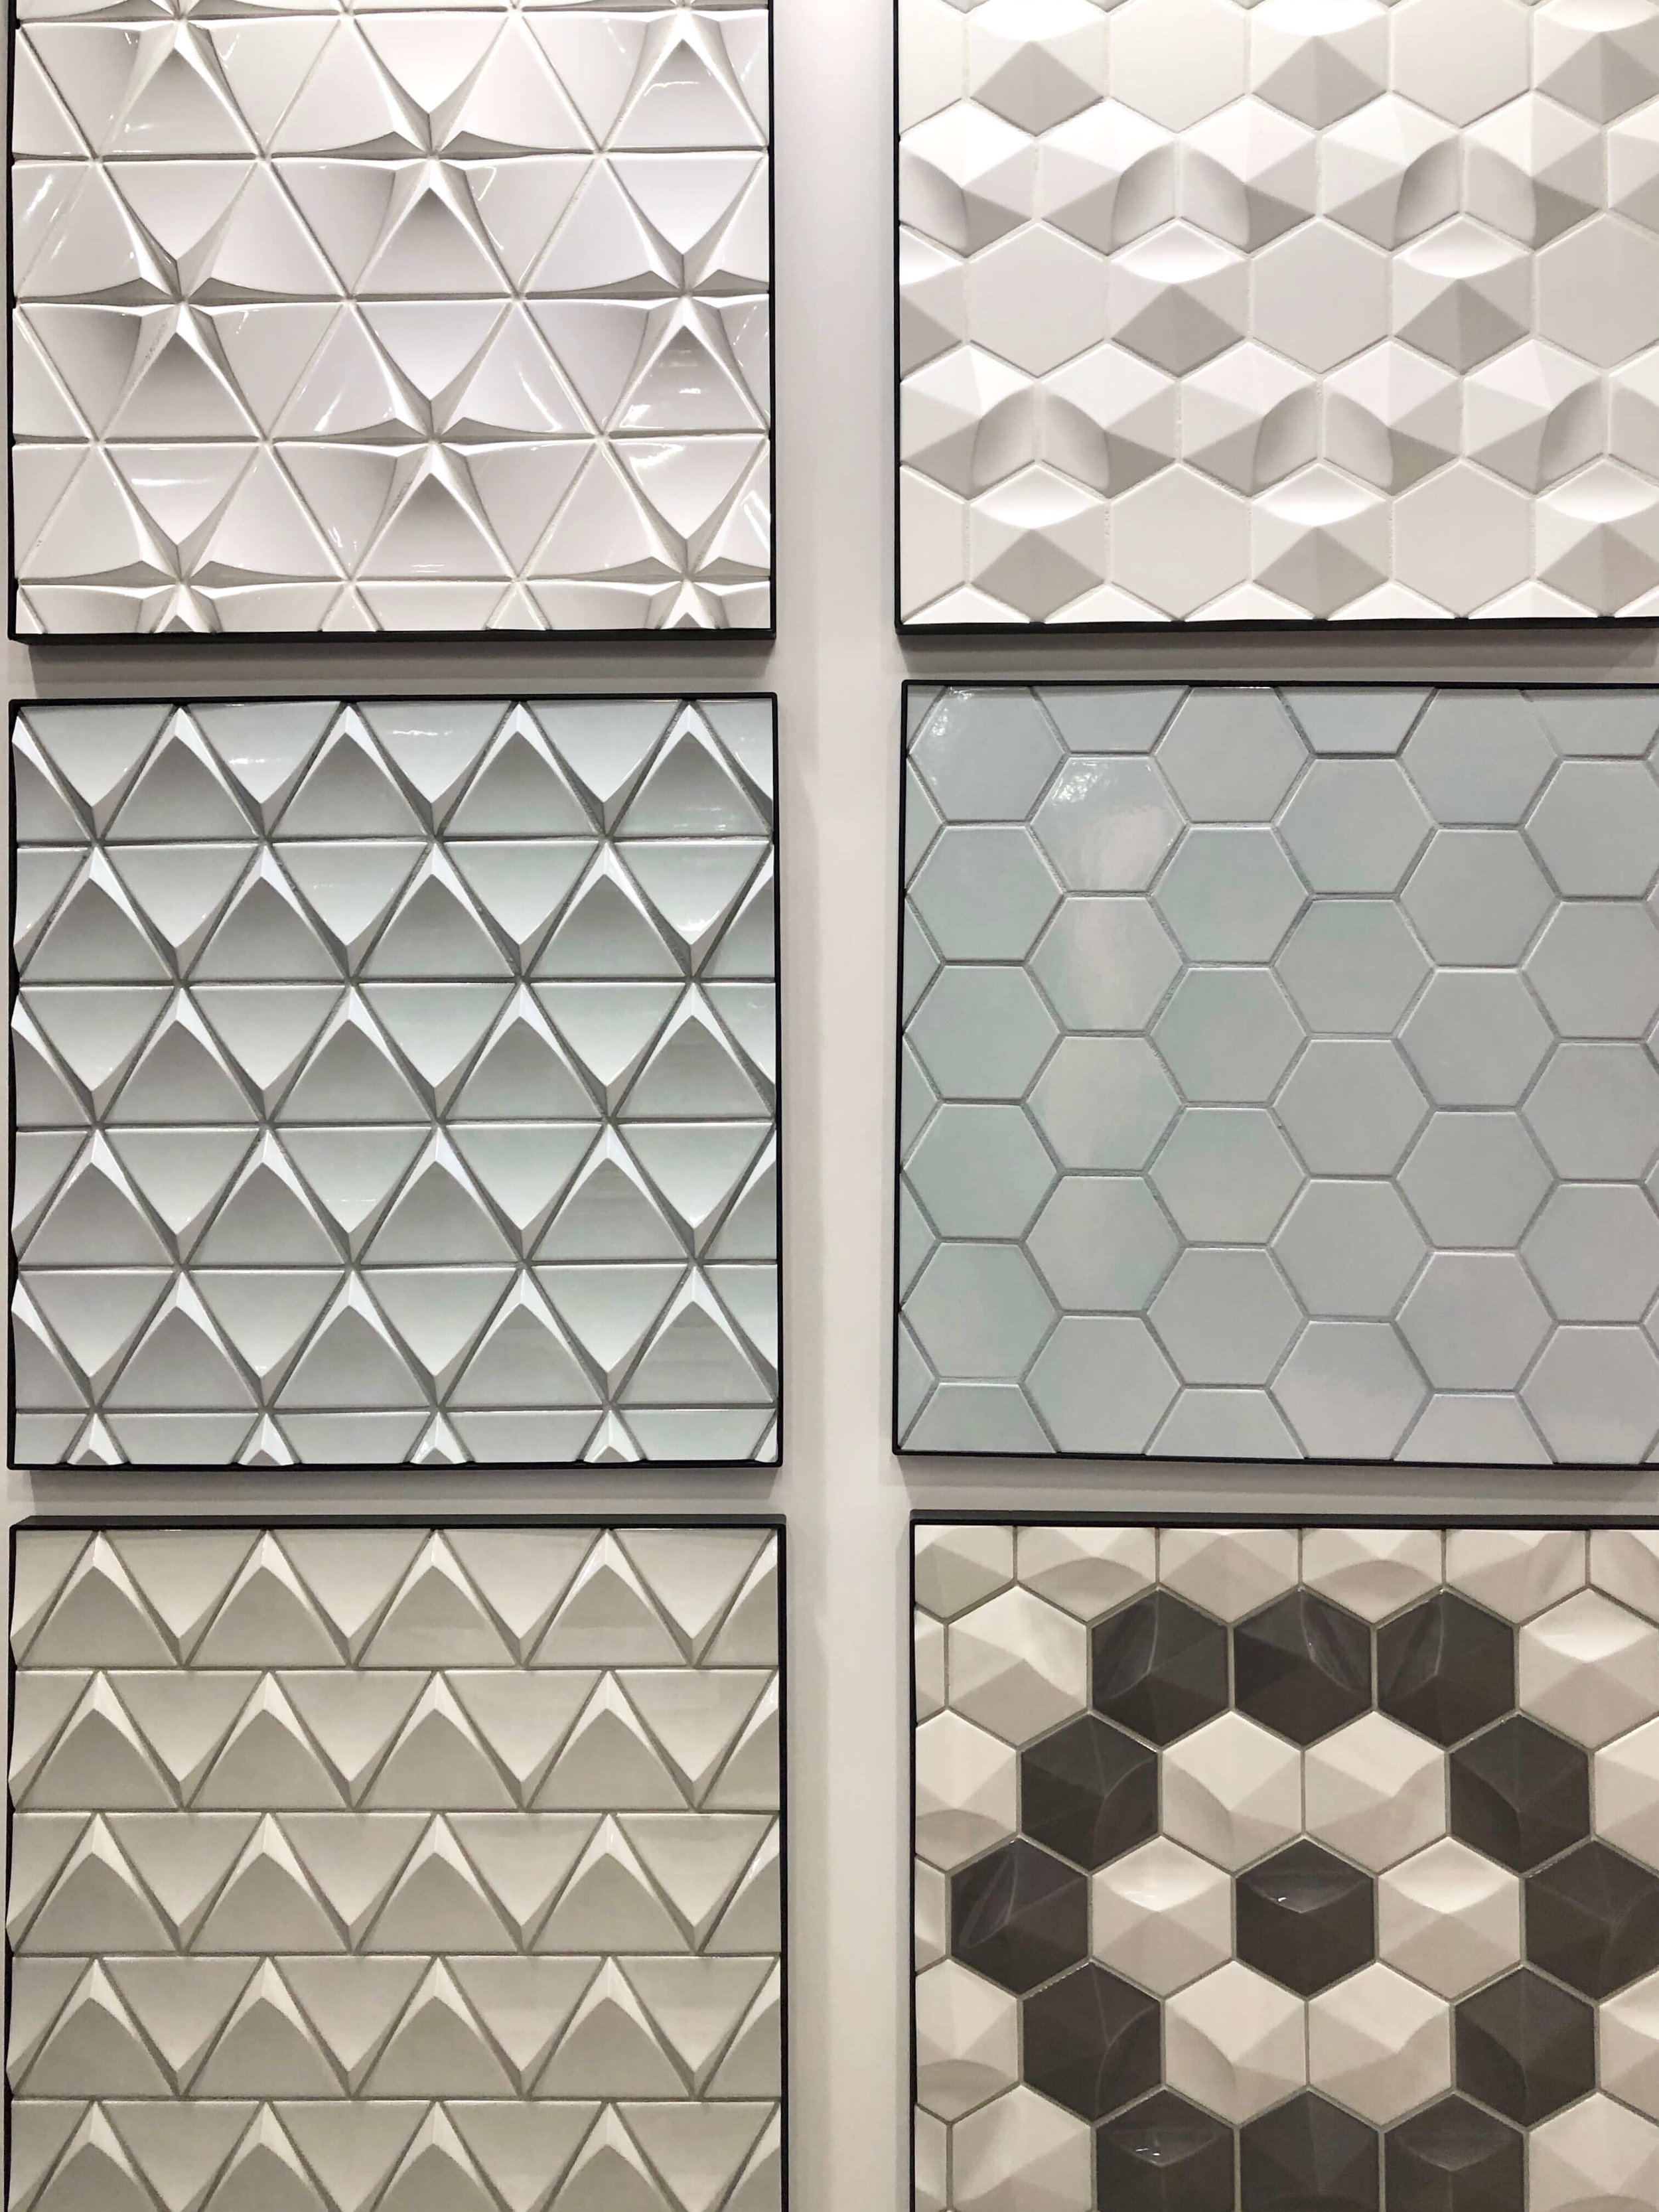 3 Dimensional tiles in hex and diamond shapes at Bedrozian, KBIS 2019 Surfaces Trends